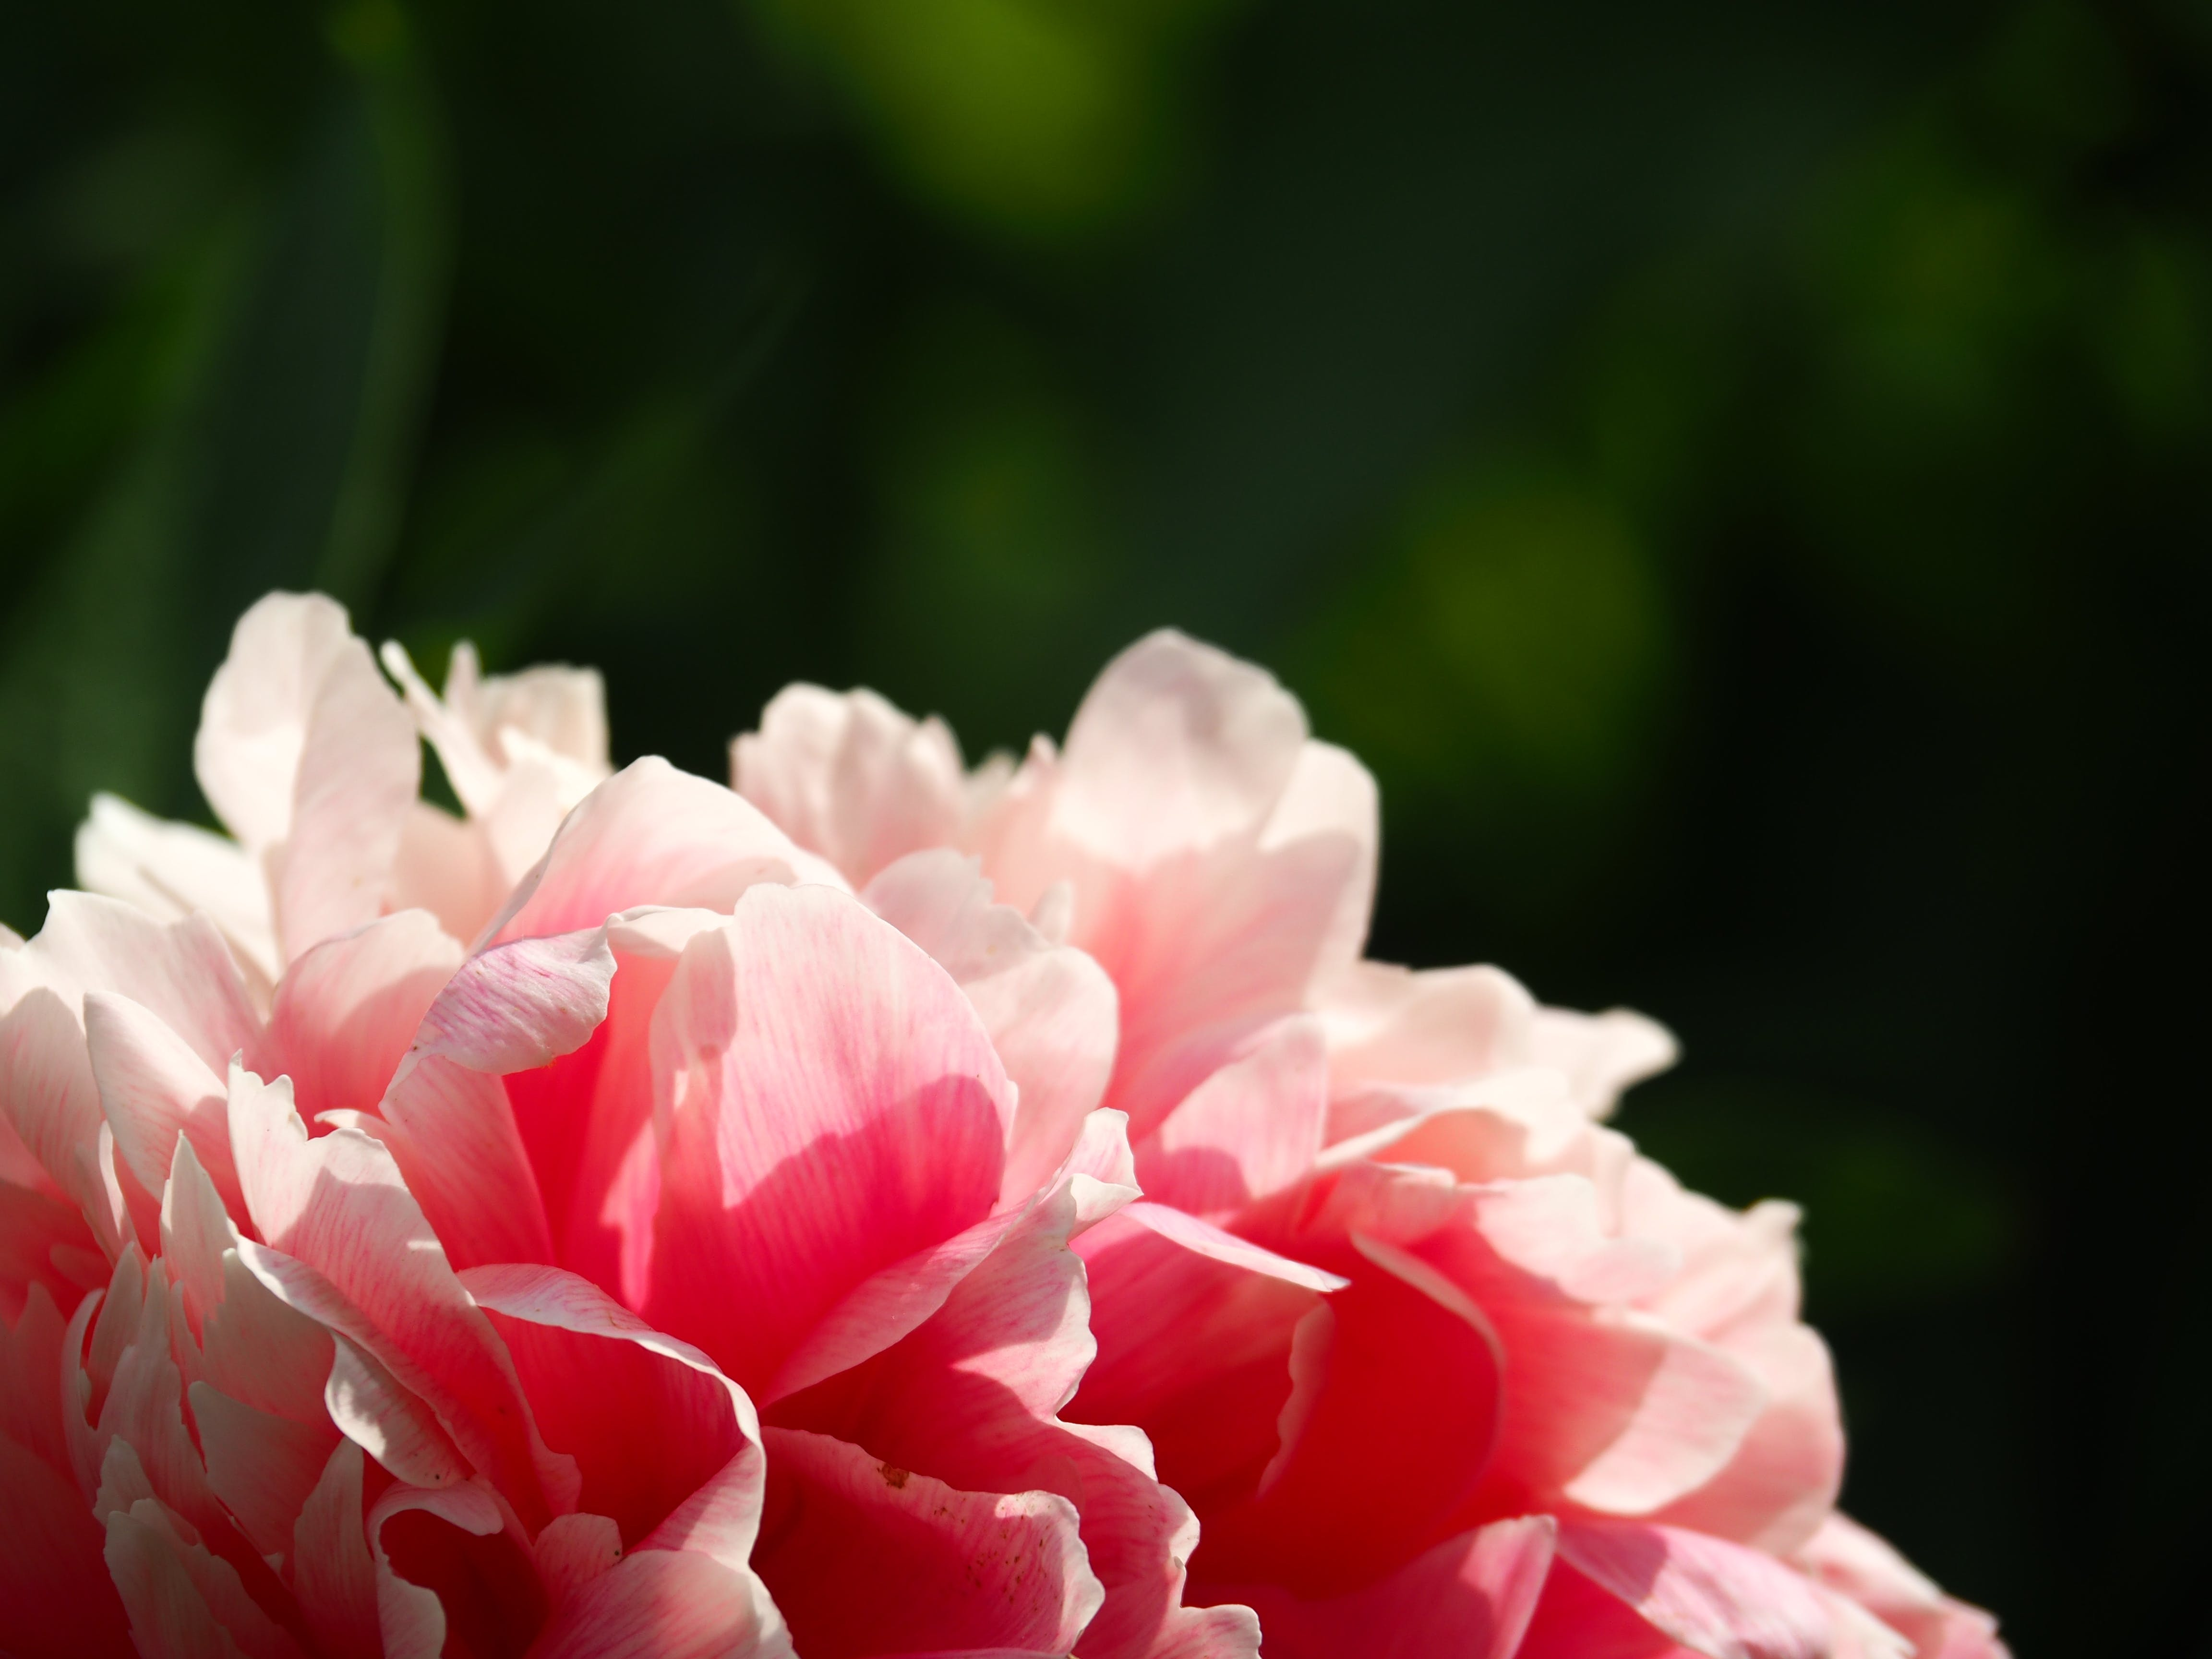 Pink Clustered Flower in Macro Focus Photography